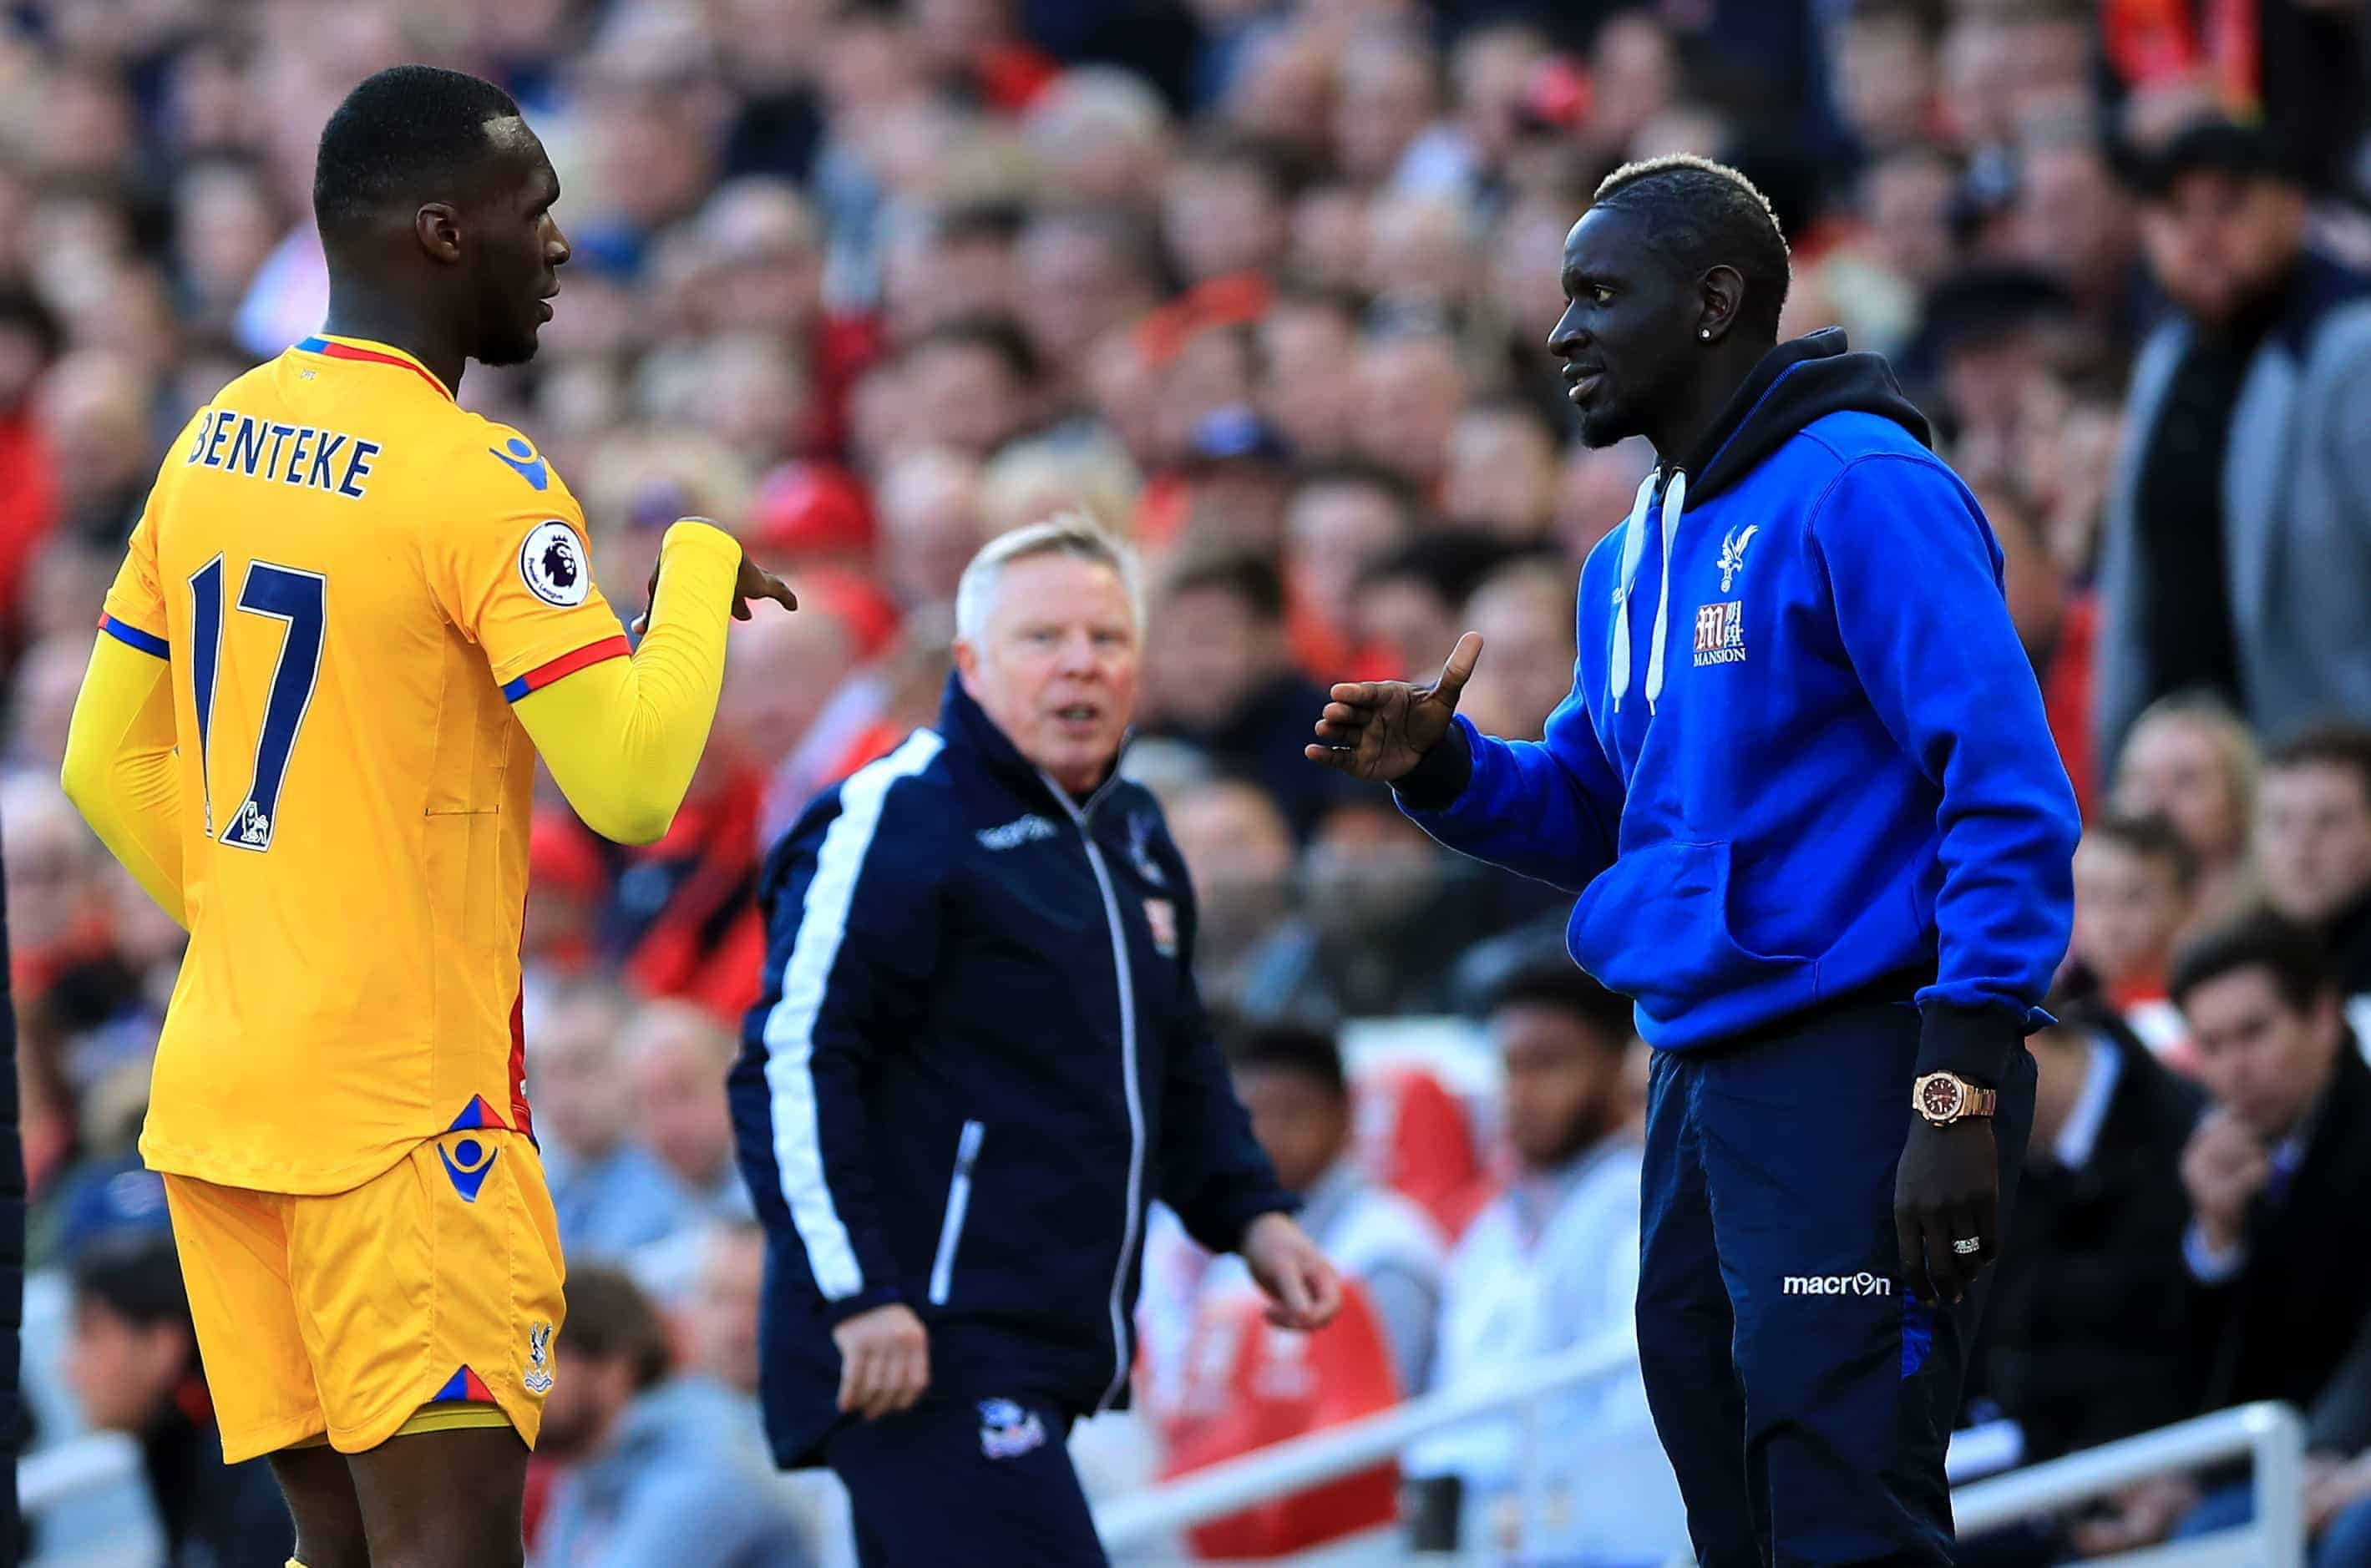 Christian Benteke tried to convince Mamadou Sakho to sign for